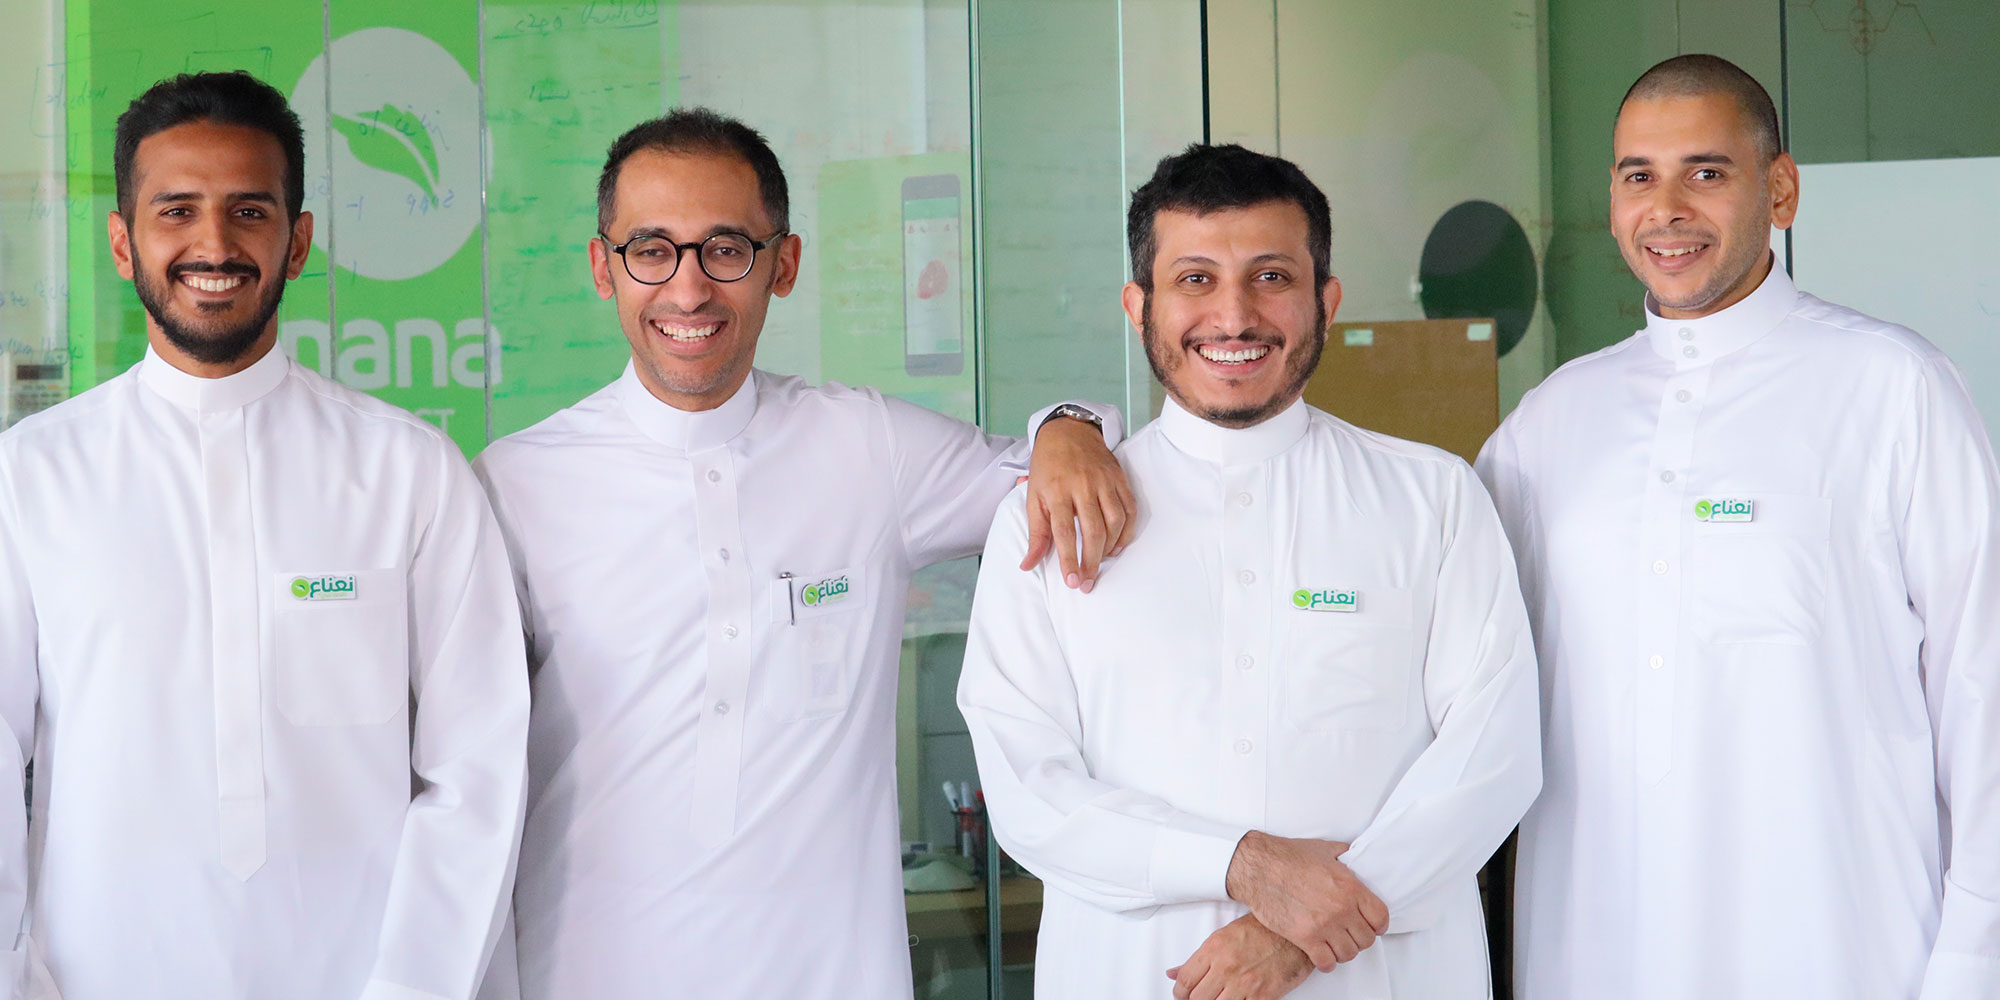 Saudi Arabia's leading online grocery platform Nana (نعناع) raised $6.6M in Series A financing co-led by MEVP